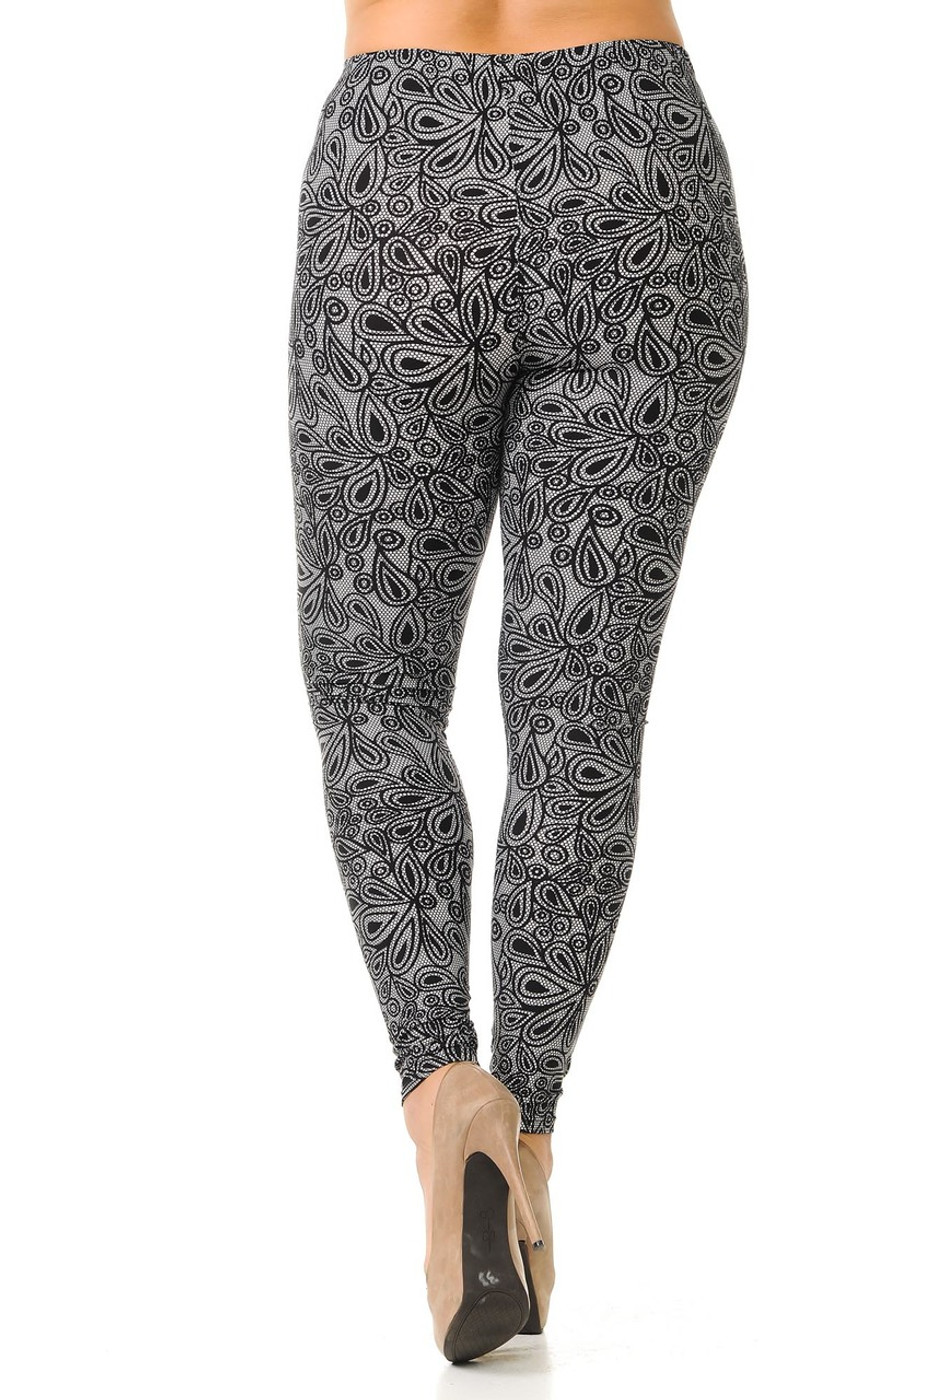 Buttery Soft Netted Petal Leggings - Extra Plus Size - 3X-5X